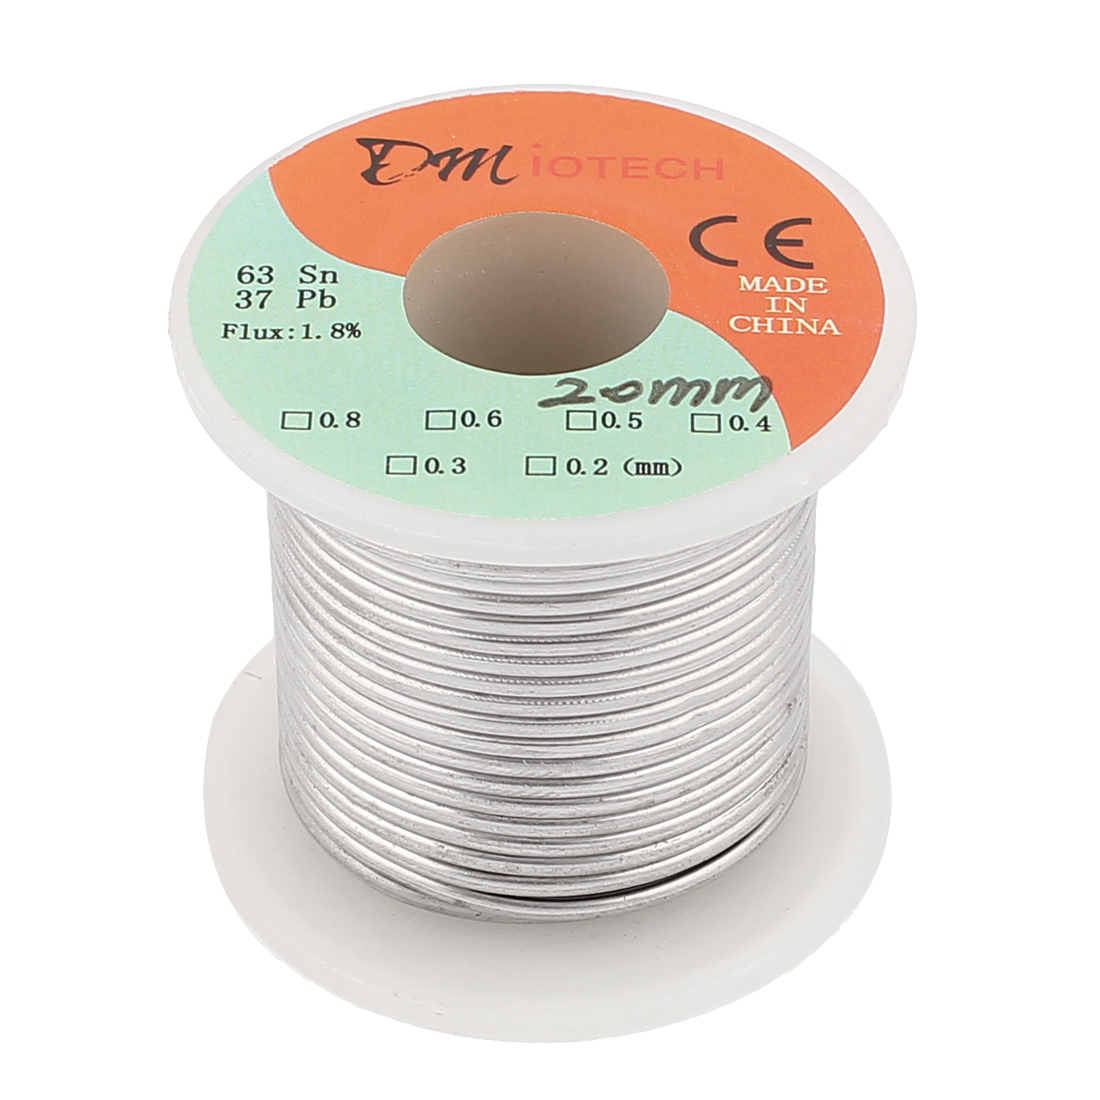 2mm 200G 63/37 Rosin Core Flux 1.8% Tin Lead Roll Soldering Solder Wire